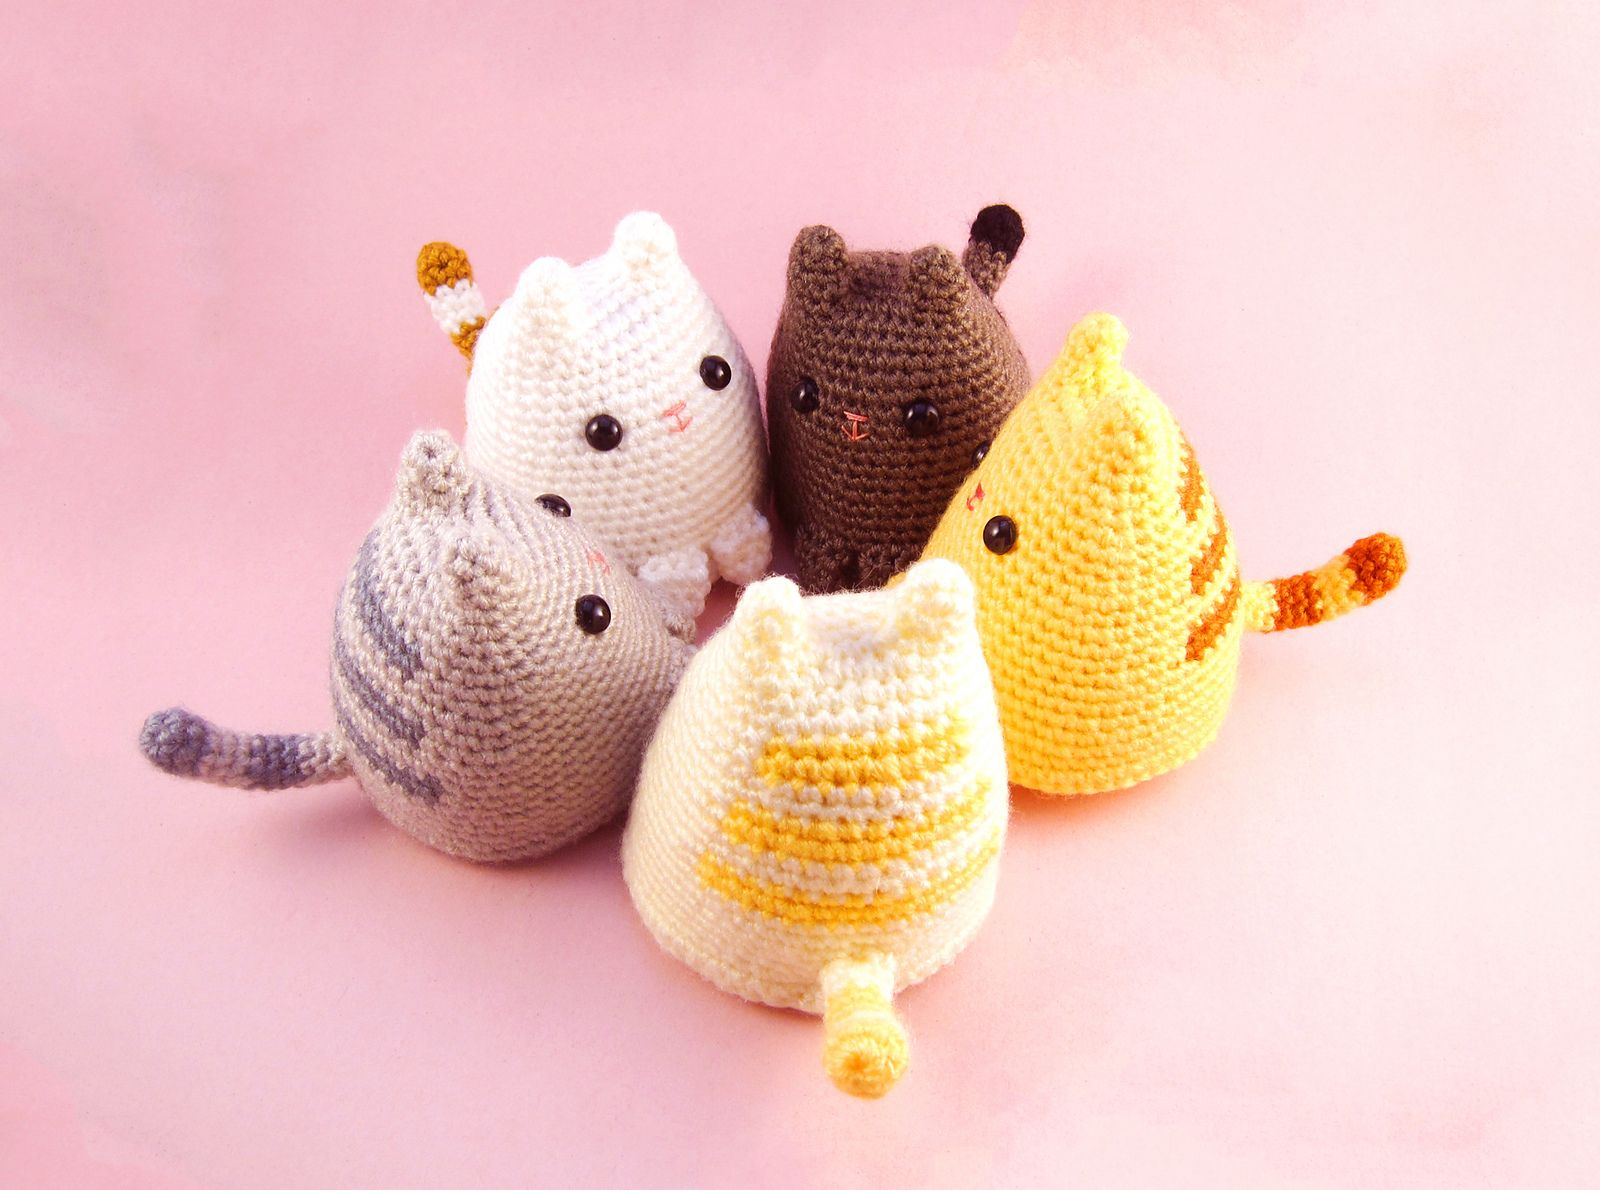 This master class will teach how to create a toy-pendant knitted cat